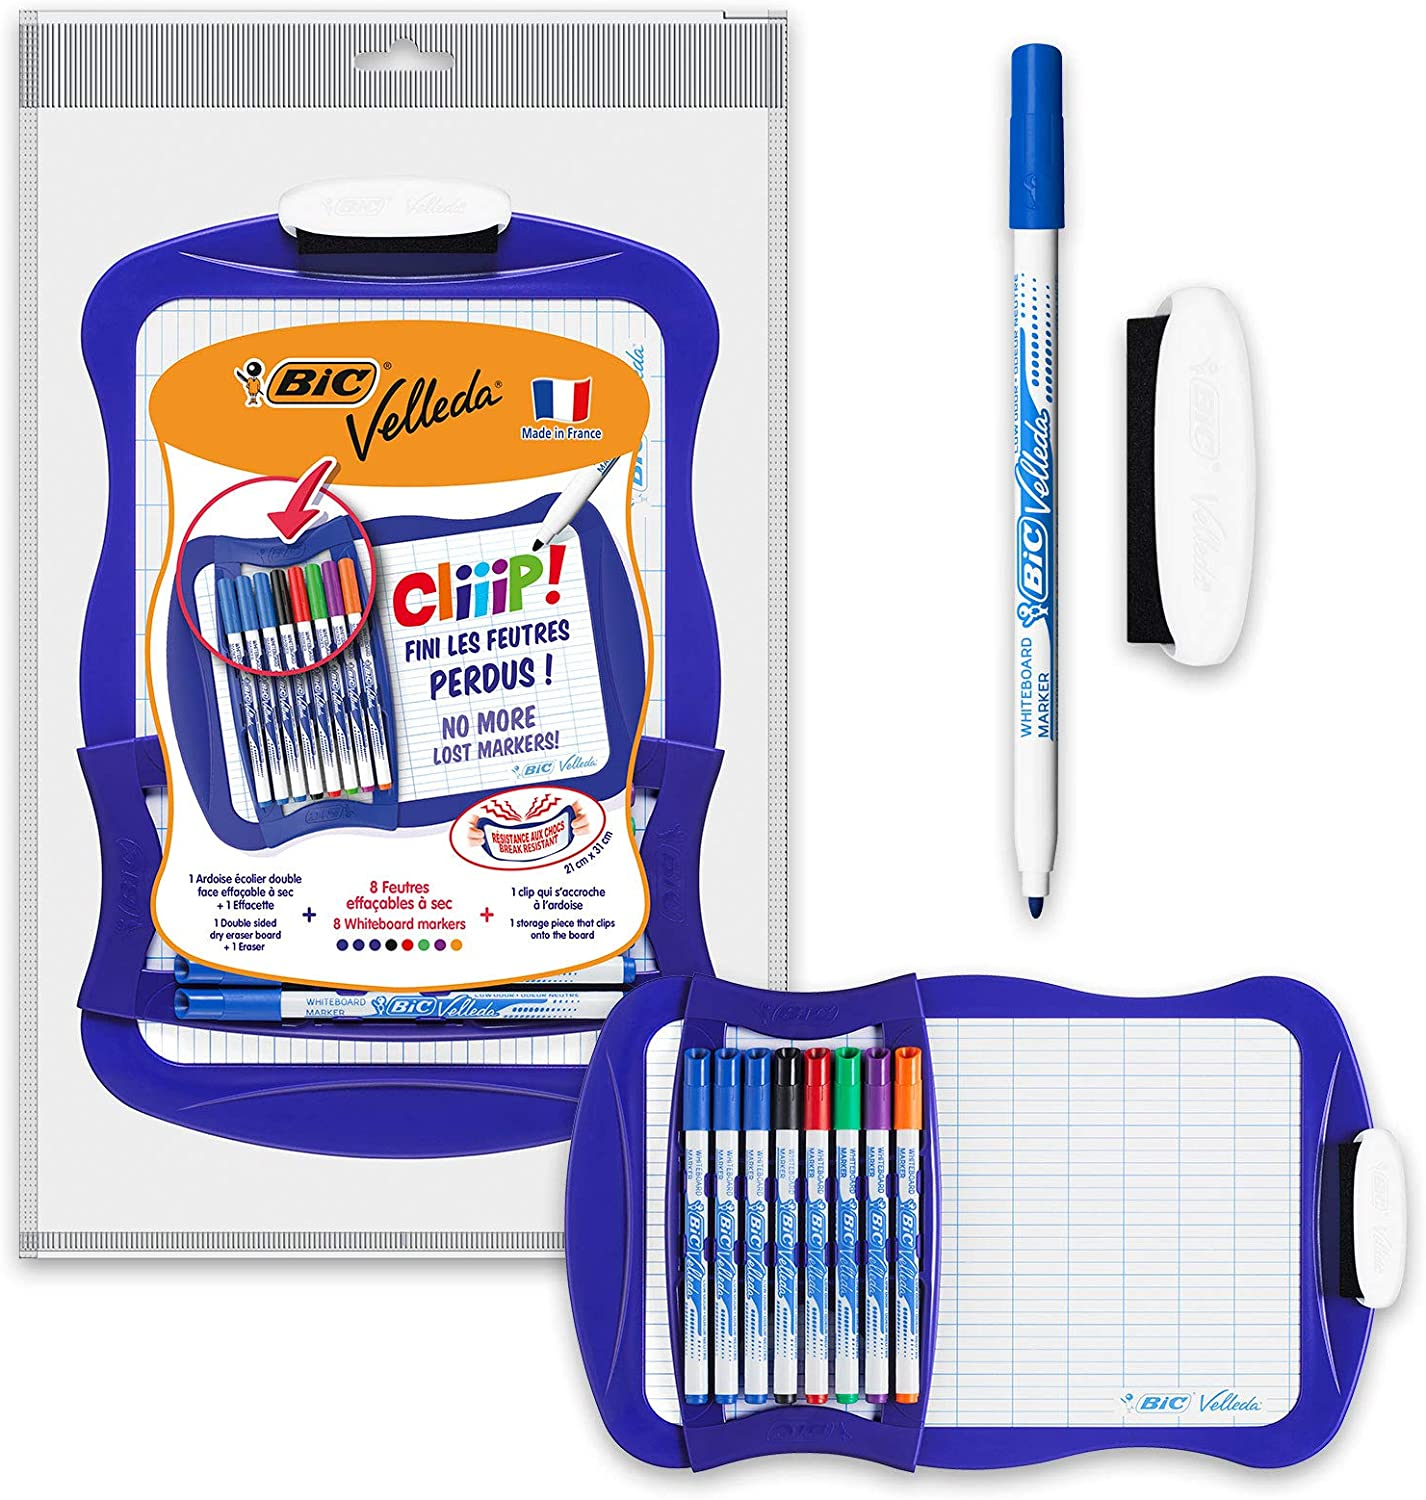 BIC Velleda Cliiip Whiteboard Set 21 x 31 cm Wiper 8 Erasable Markers Assorted Colours